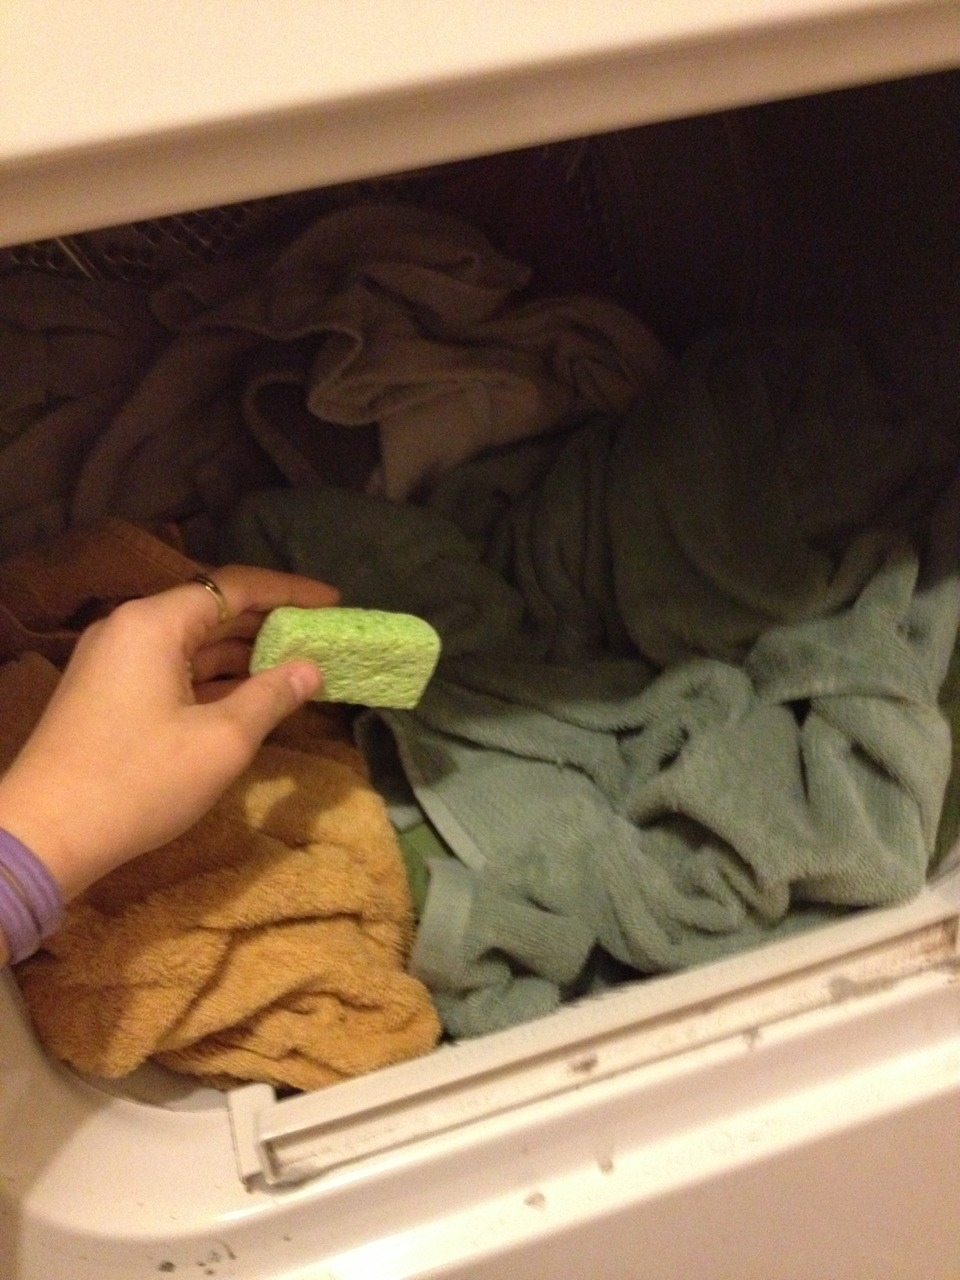 when dryer is finished find the dried sponge and take it out.